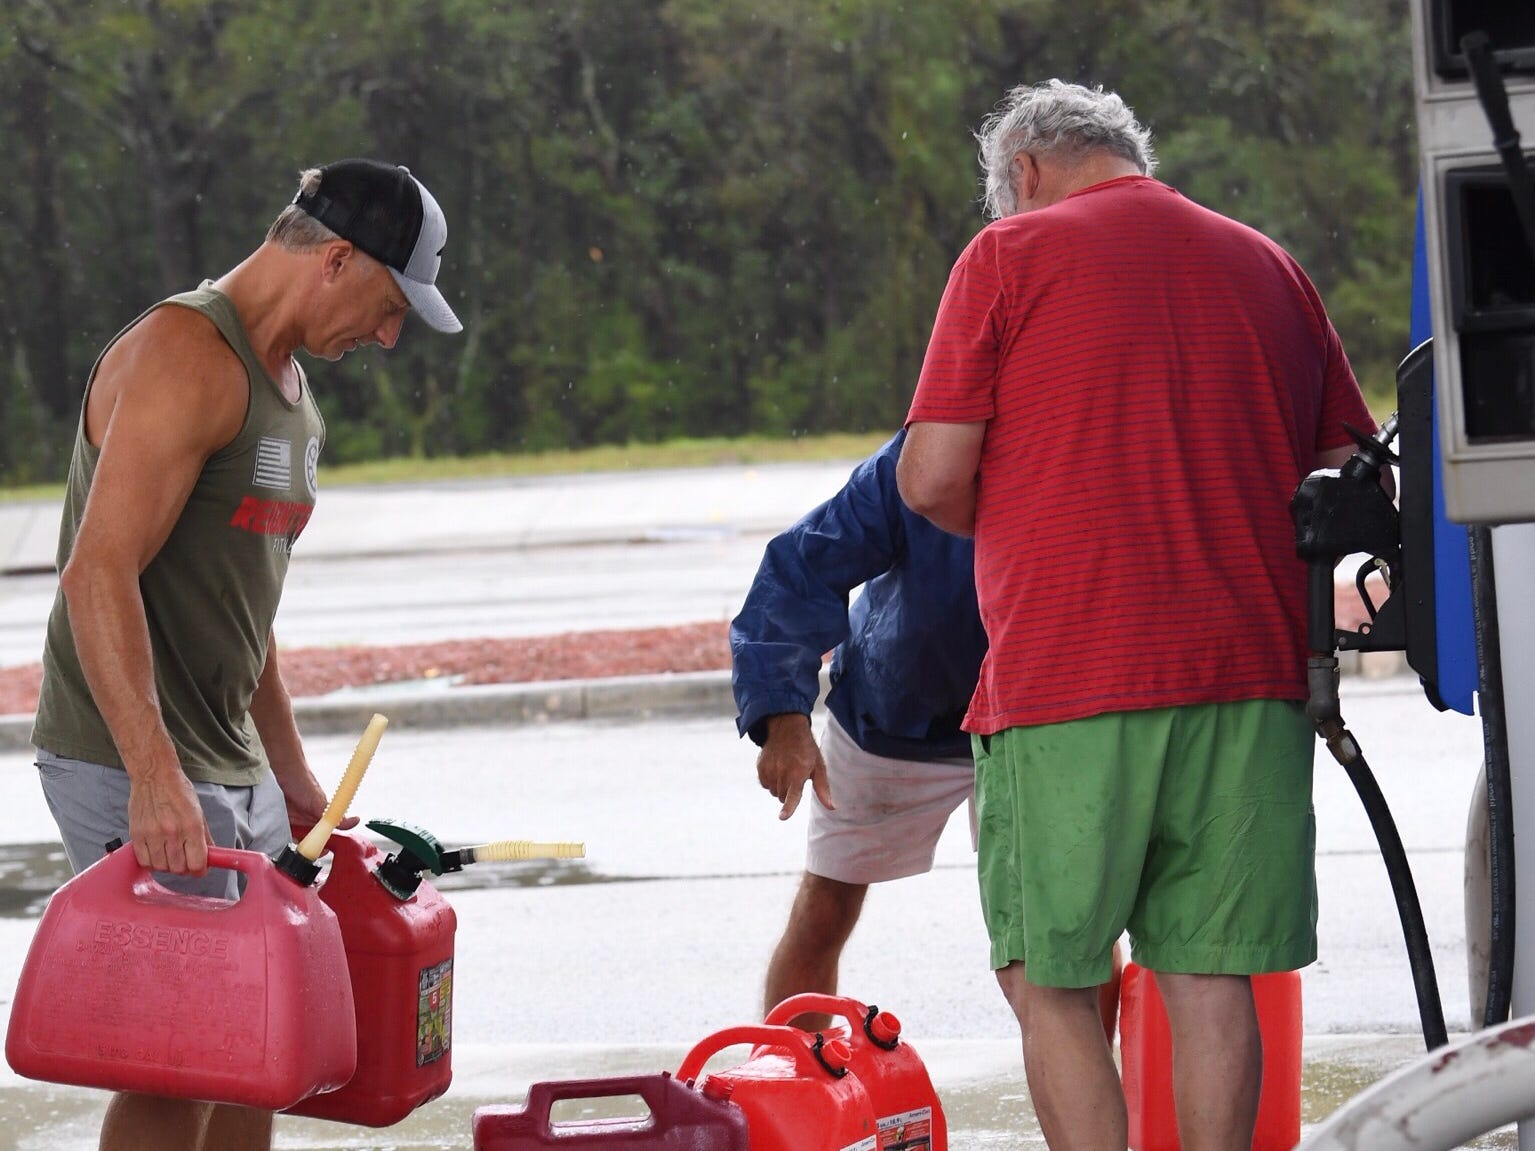 Blair Young, left, takes his gas containers back to his truck from Candy's Exxon in Wilmington on Saturday, Sept. 15, 2018.